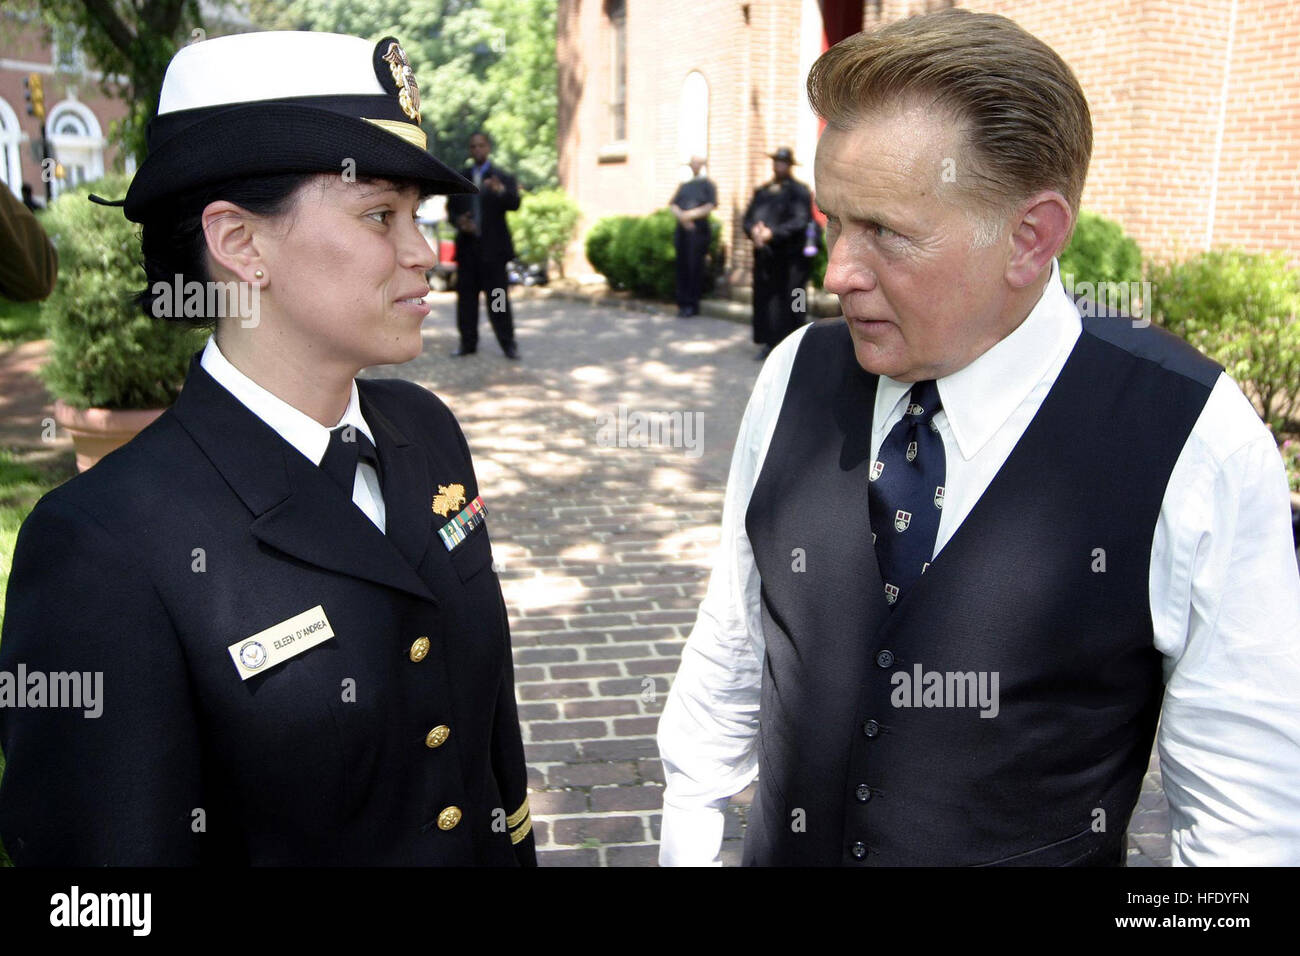 040510-N-5321R-147 Annapolis, Md. - Lt. Eileen D'Andrea, left, and acclaimed actor Martin Sheen discuss the - Stock Image